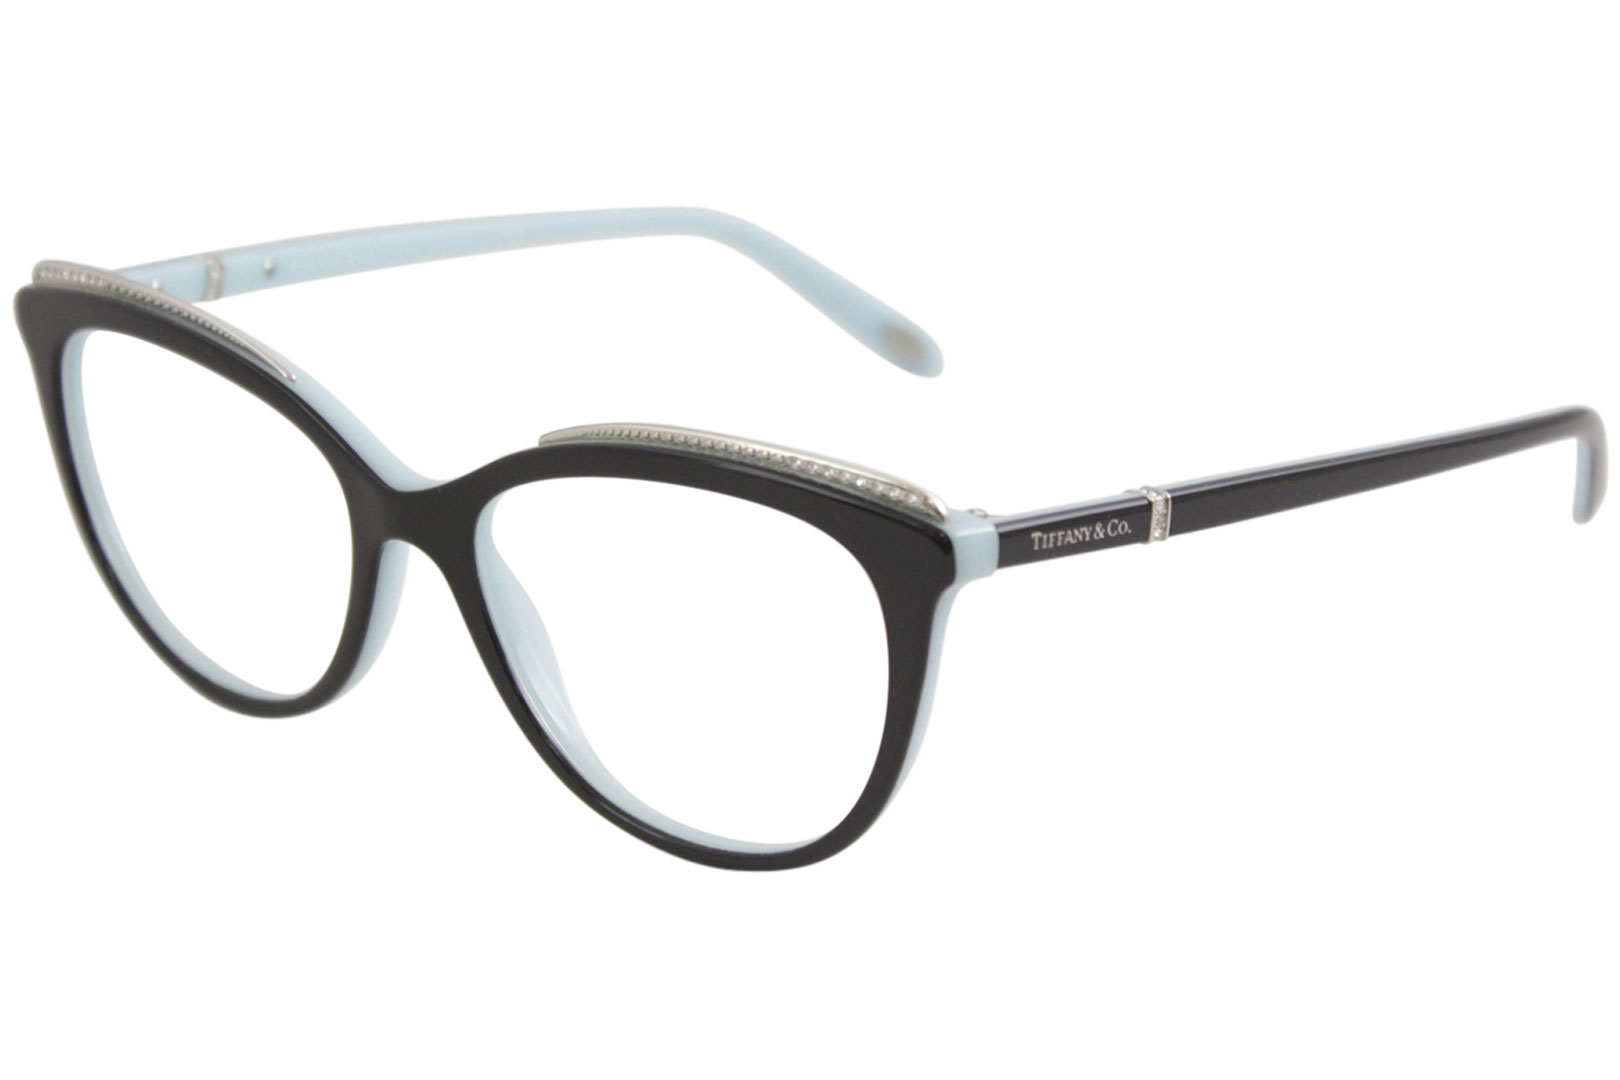 79b73e495c3d Tiffany   Co. Eyeglasses TF2147B TF 2147 B 8055 Black Blue Optical ...